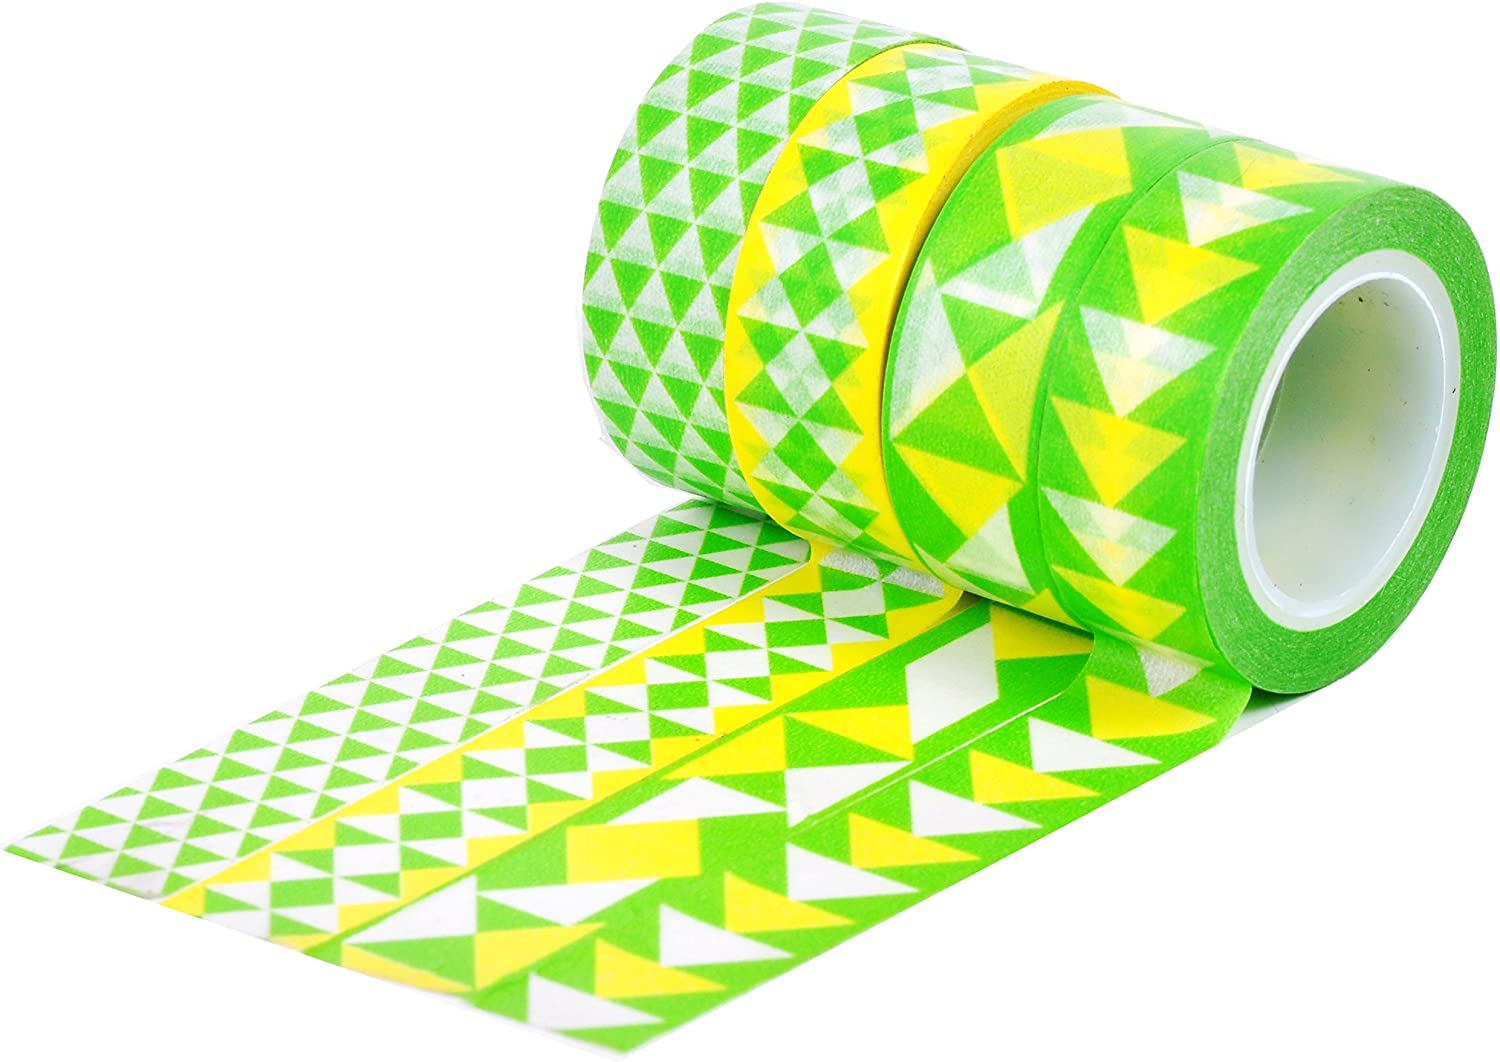 HIART Repositionable Washi Tape, Triangle Geos Gelb and Grün, Set of 4 by HIART B00H0ADFNW     | Online-Exportgeschäft